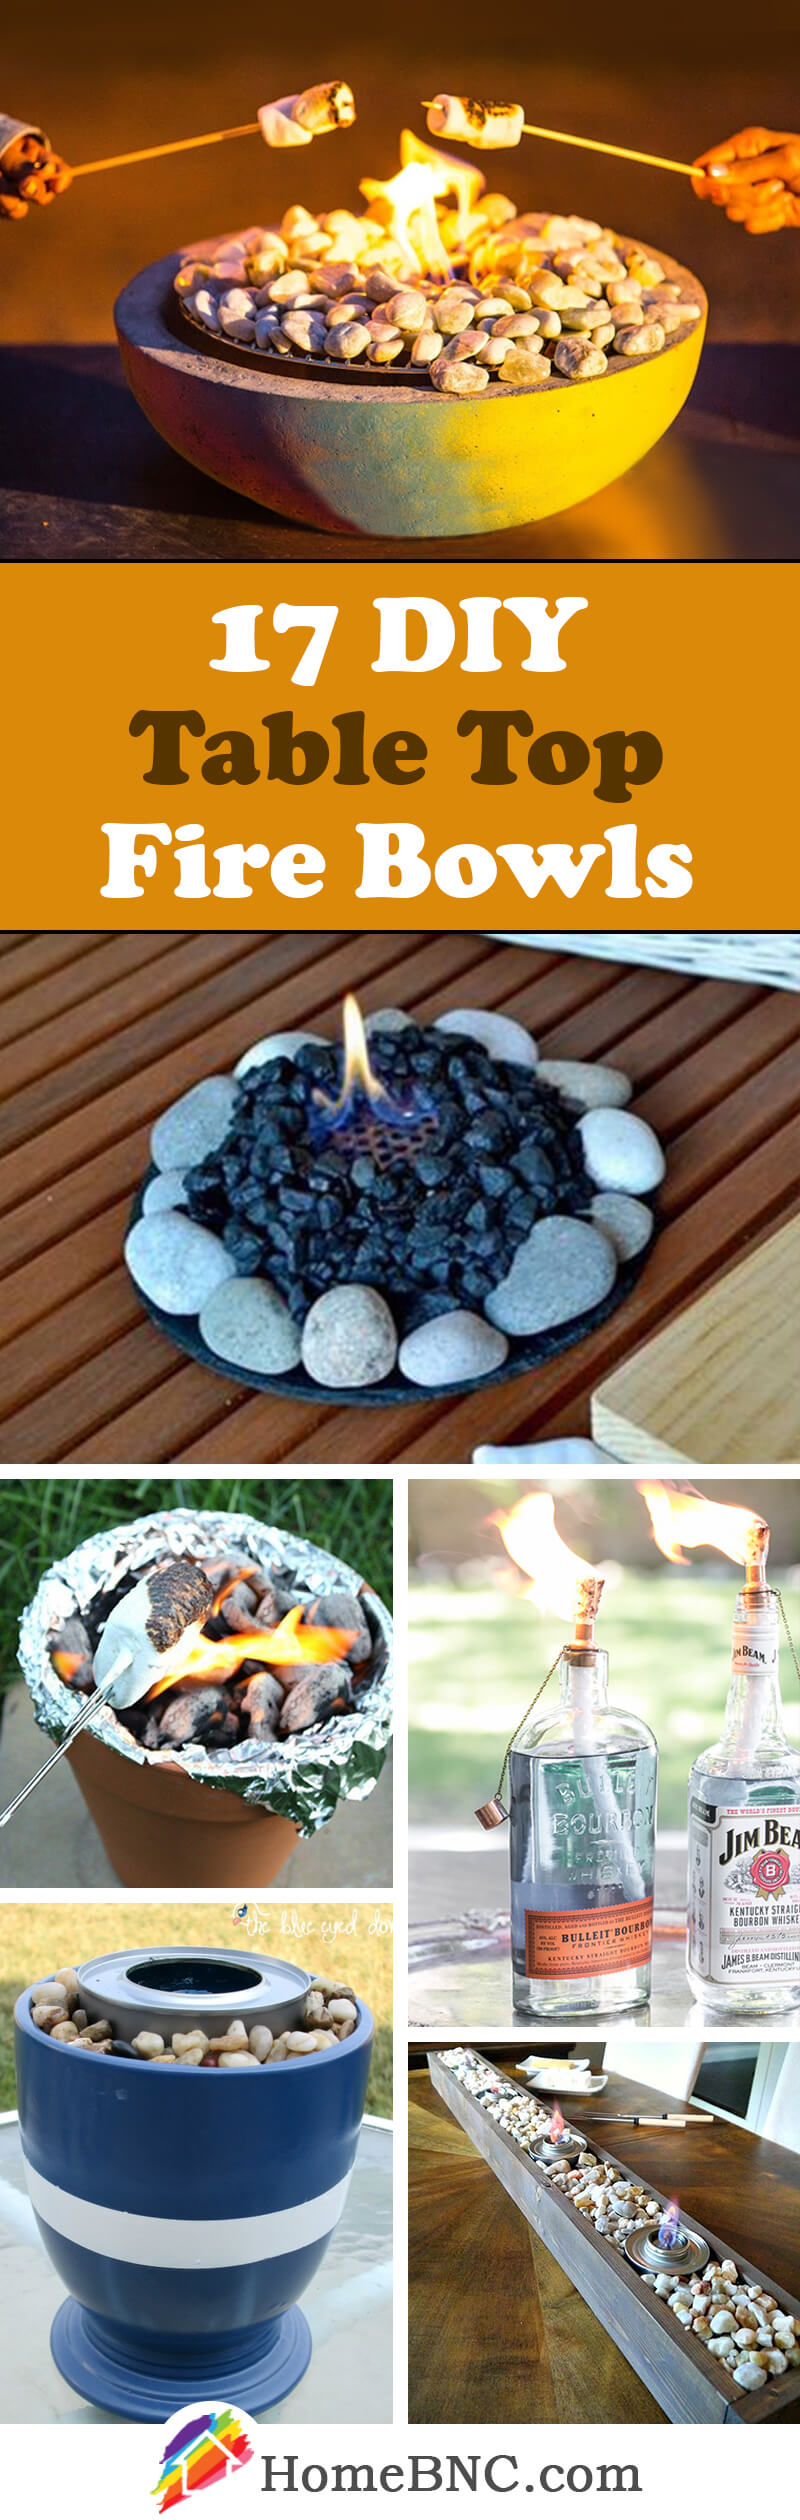 diy table top fire bowls ideas pinterest share homebnc Top Result 50 Awesome Backyard Creations Fire Pit Picture 2018 Ojr7